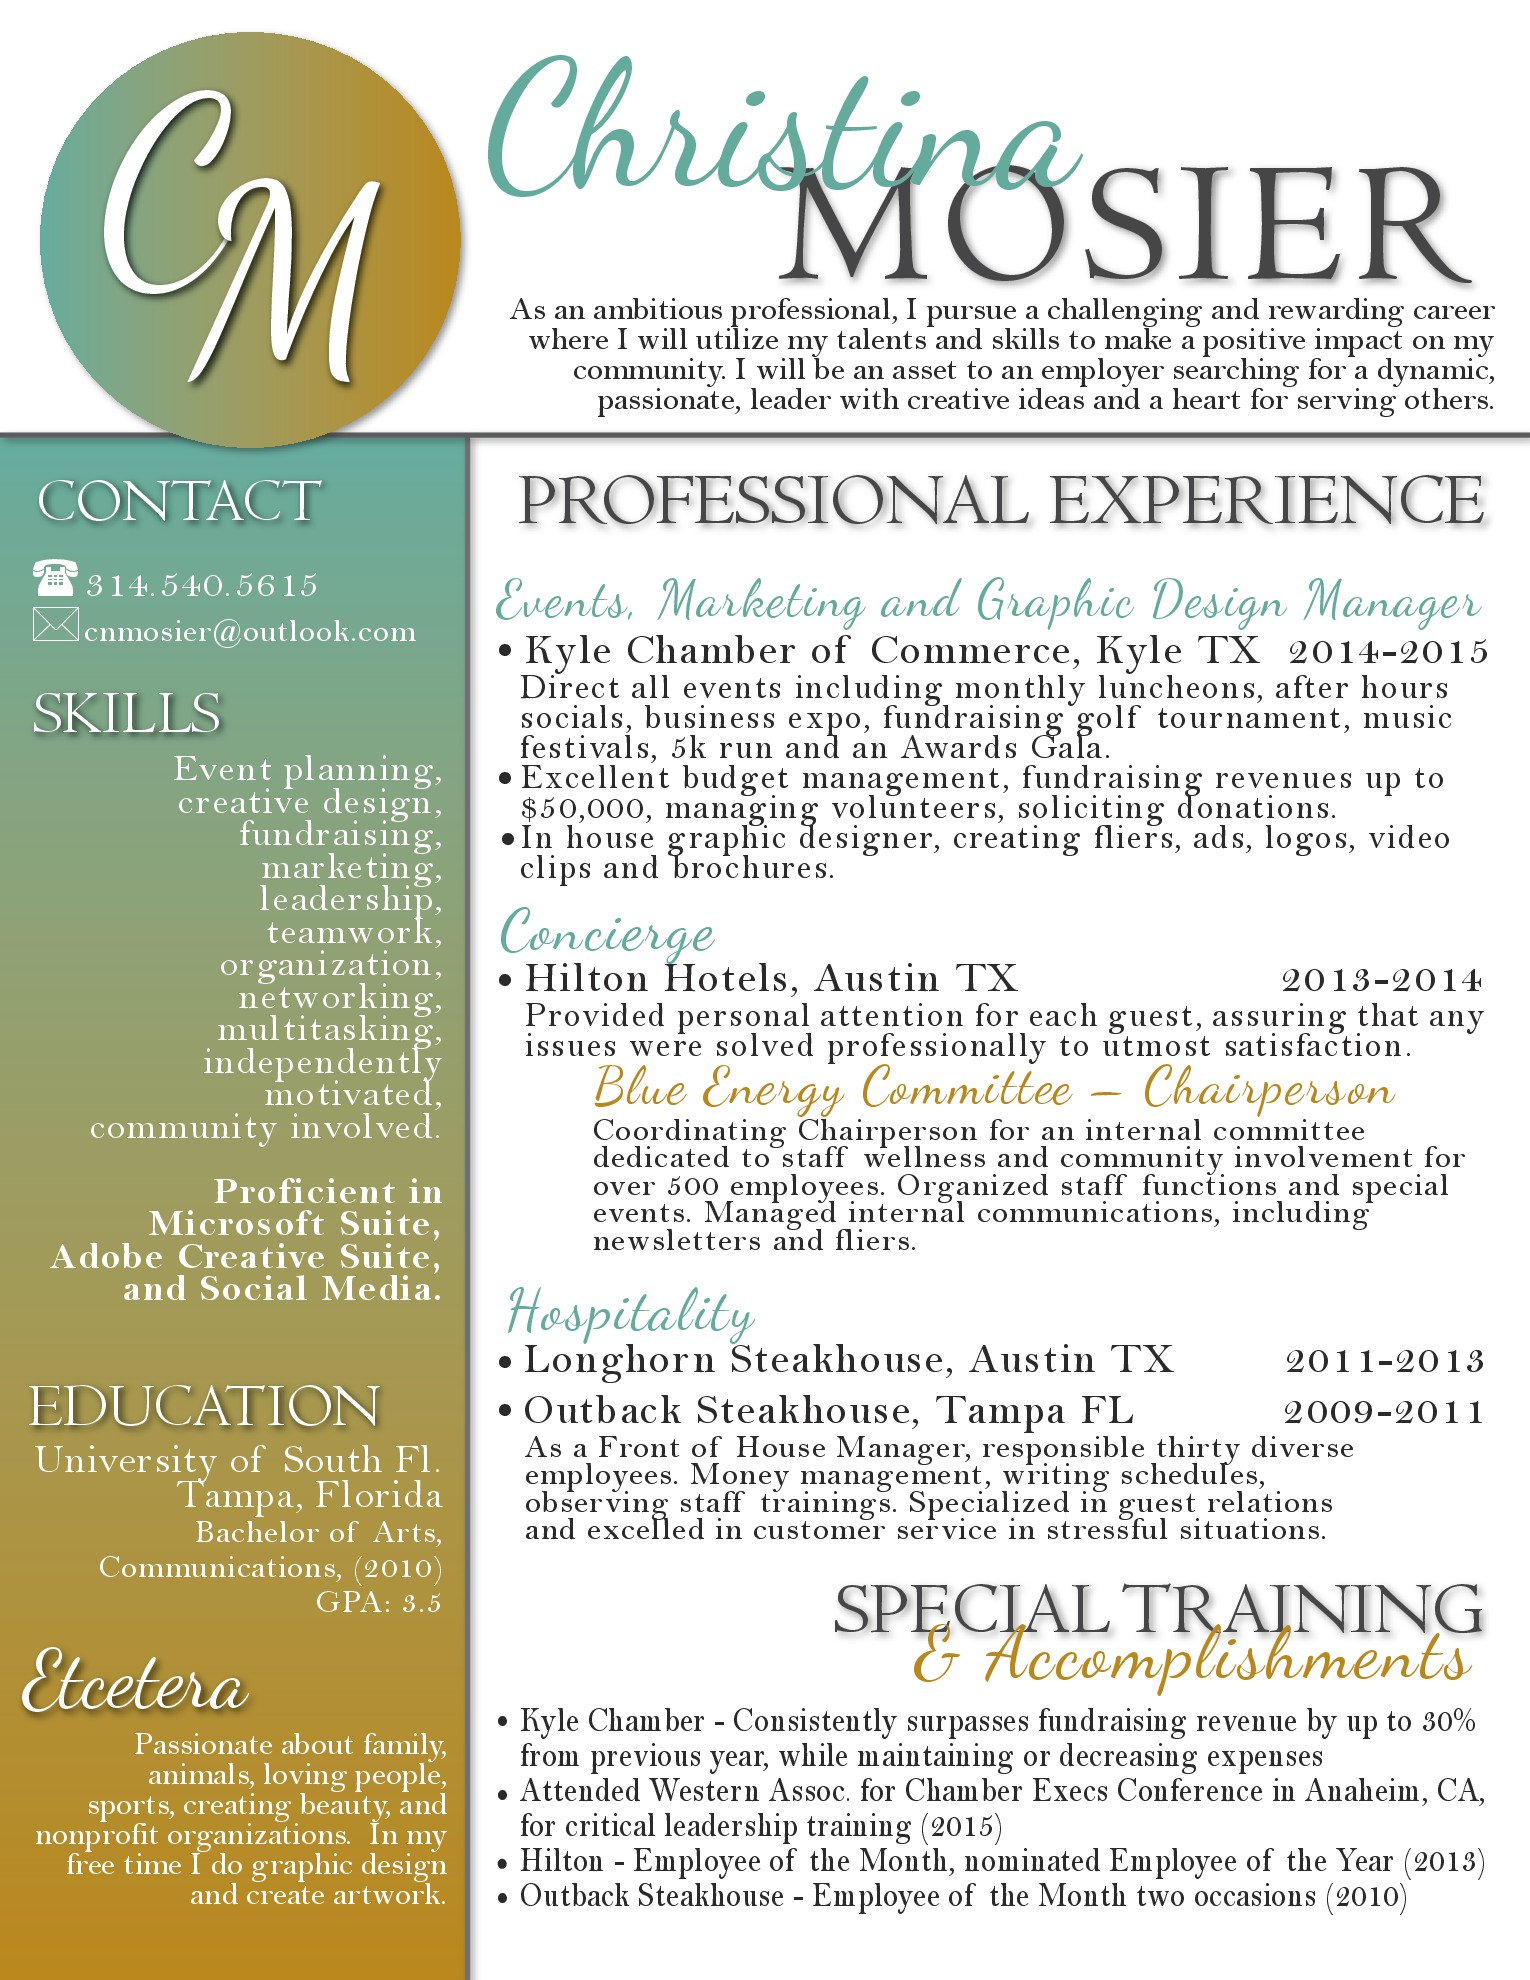 Tommy Johnson Christina Mosier Resume Resume Writing By Tommy Johnson